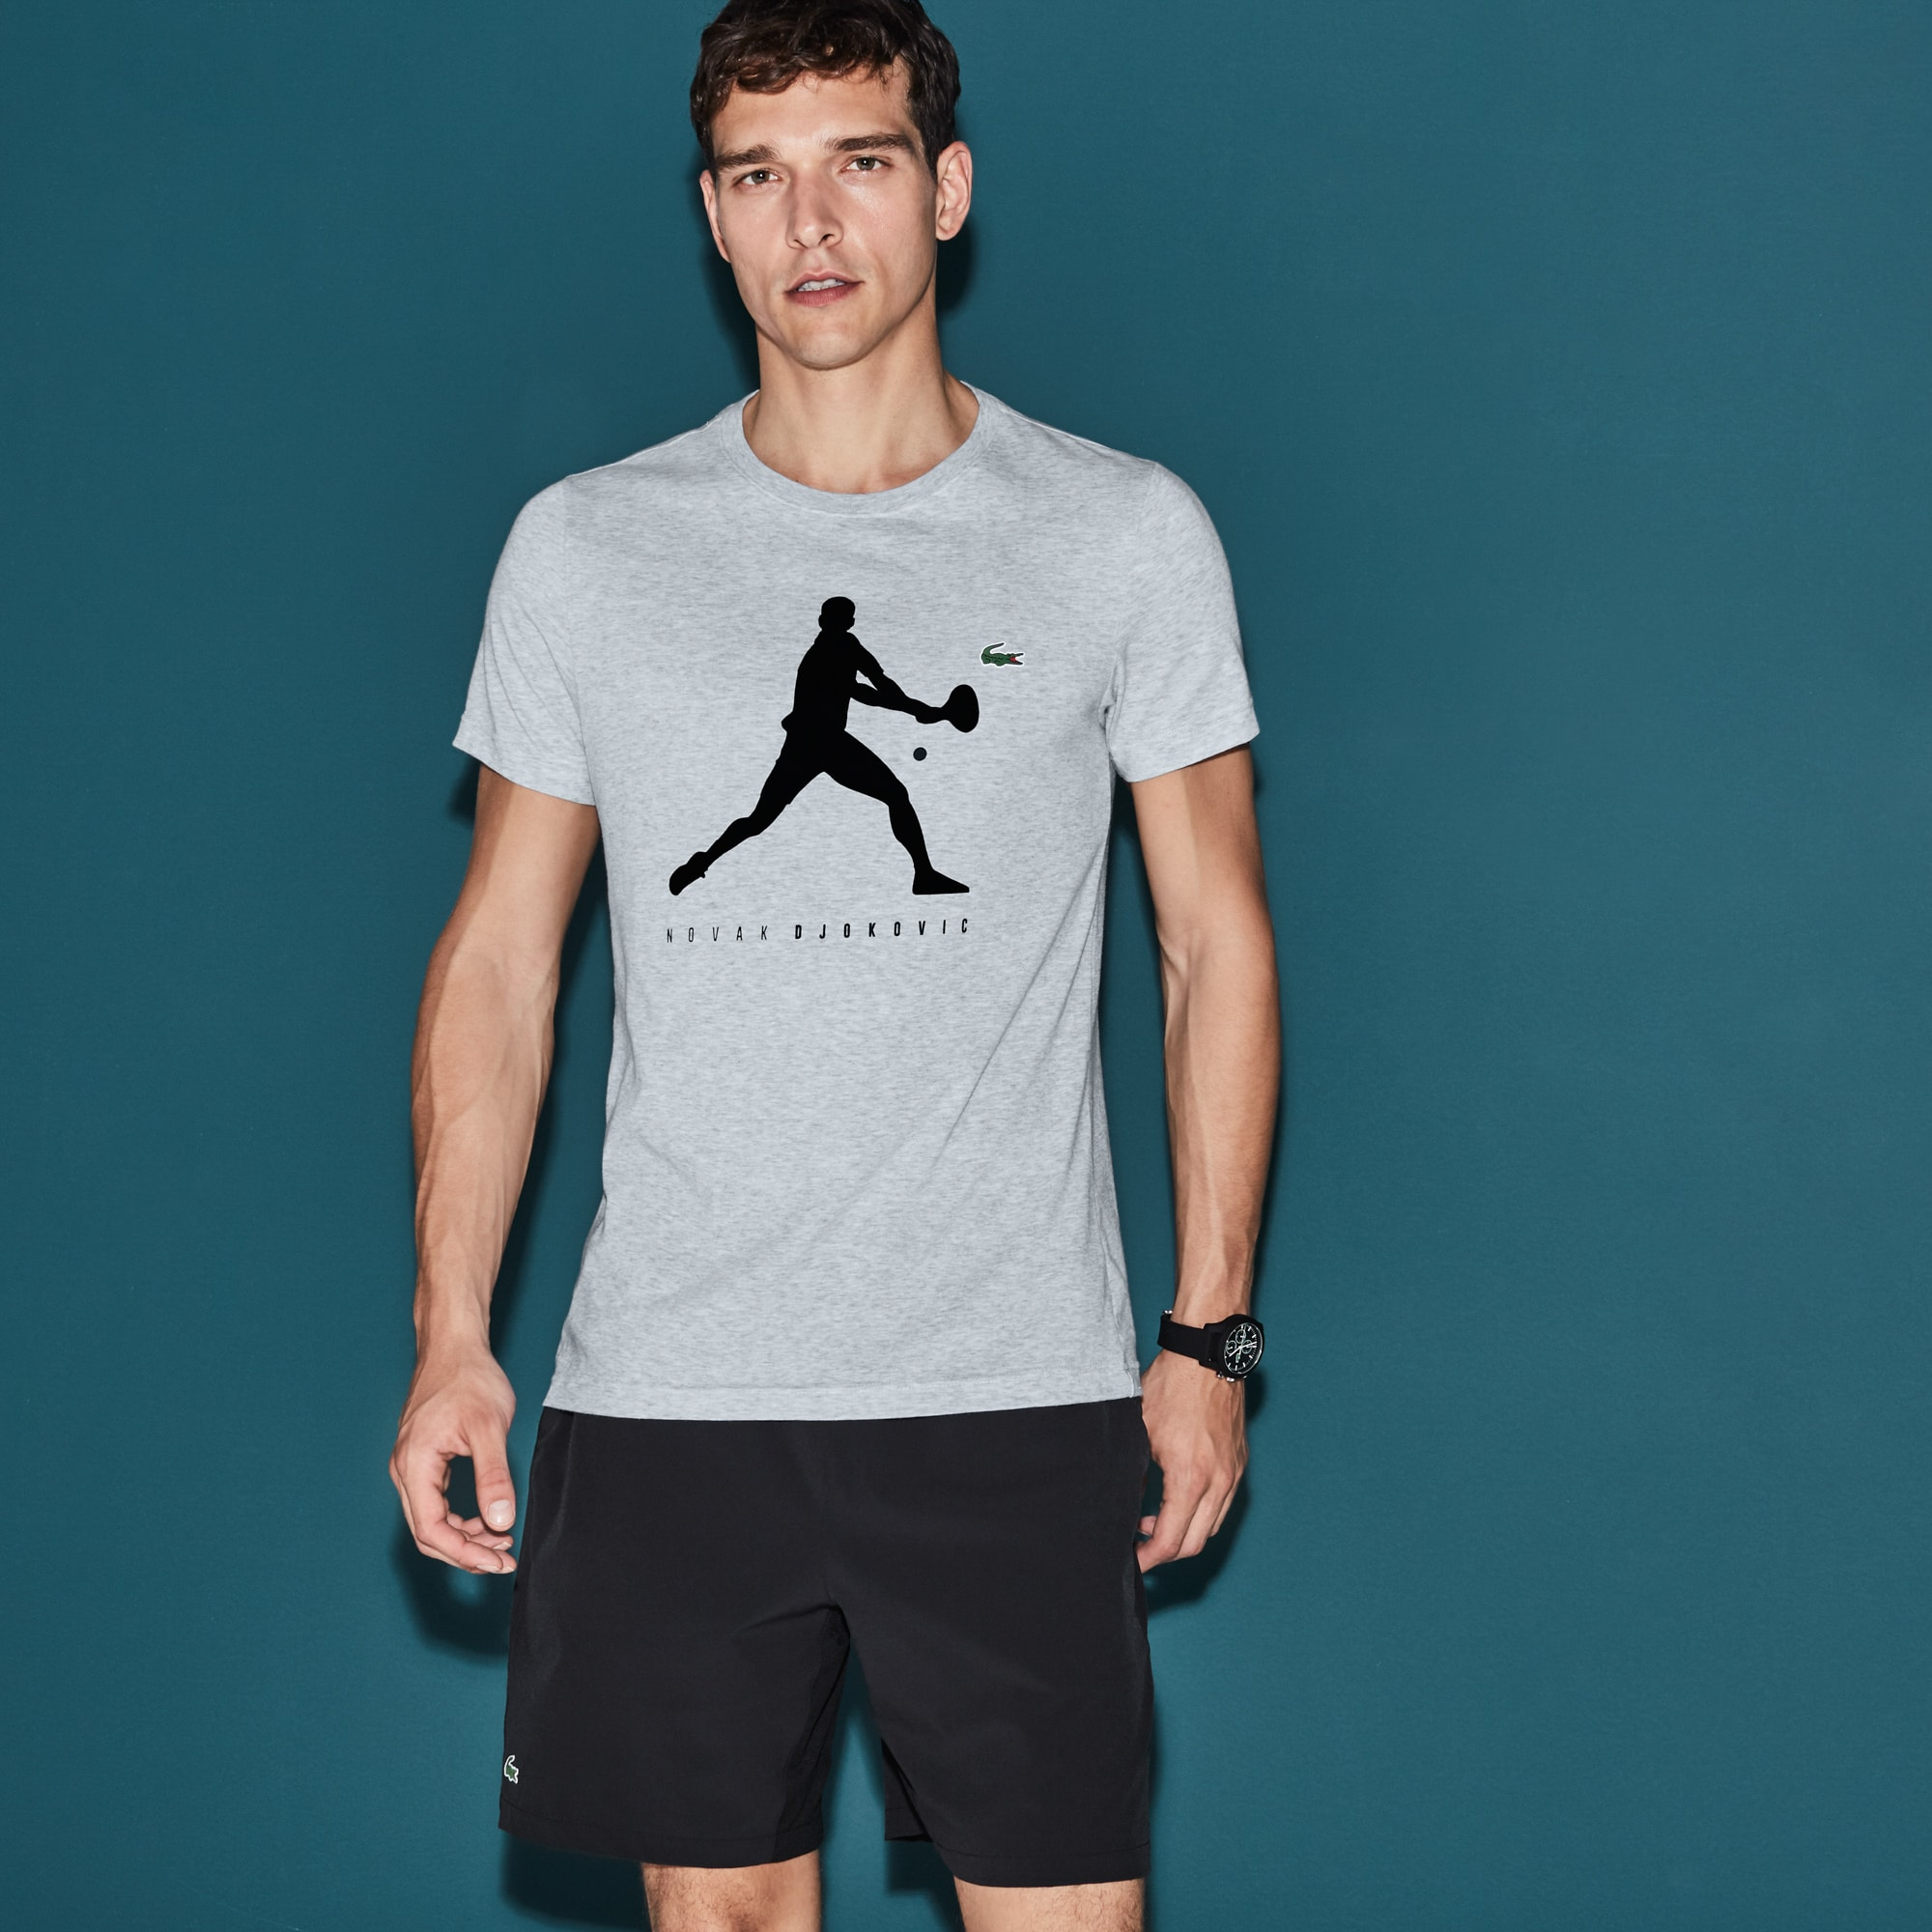 T-shirt a Girocollo In Jersey Tinta Unita Con Stampato - Collezione Support With Style